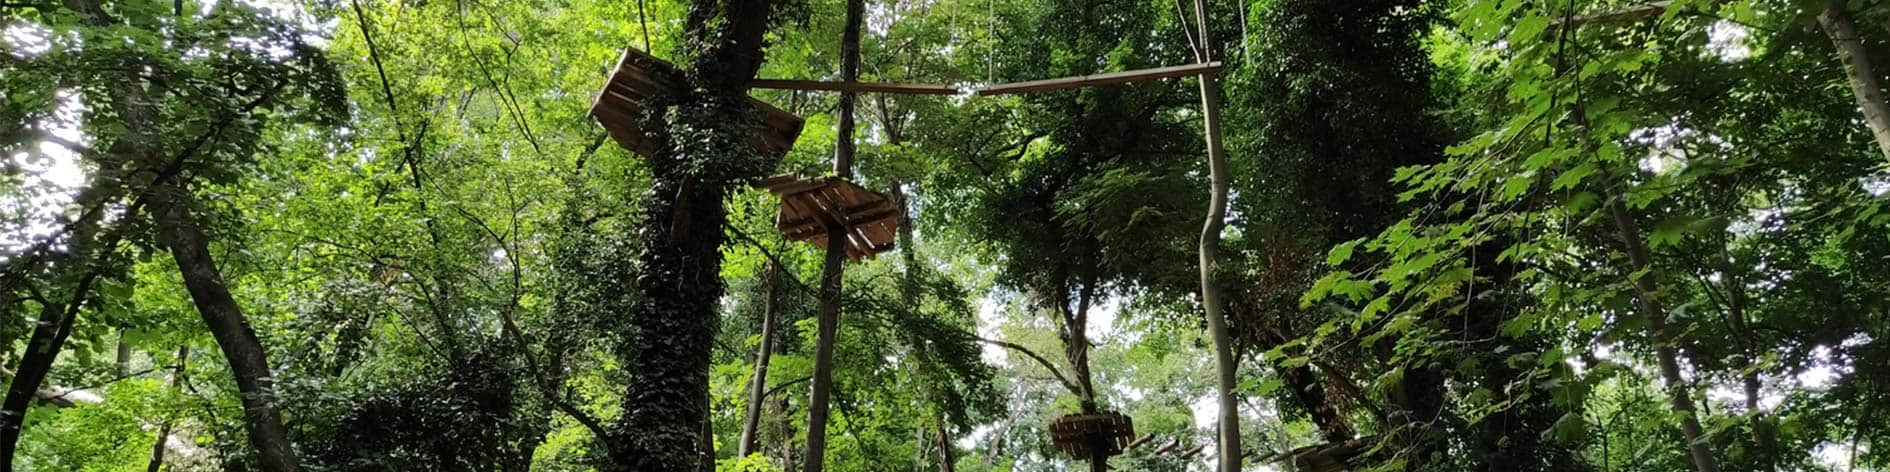 Go Ape activity centre in Ringwood.